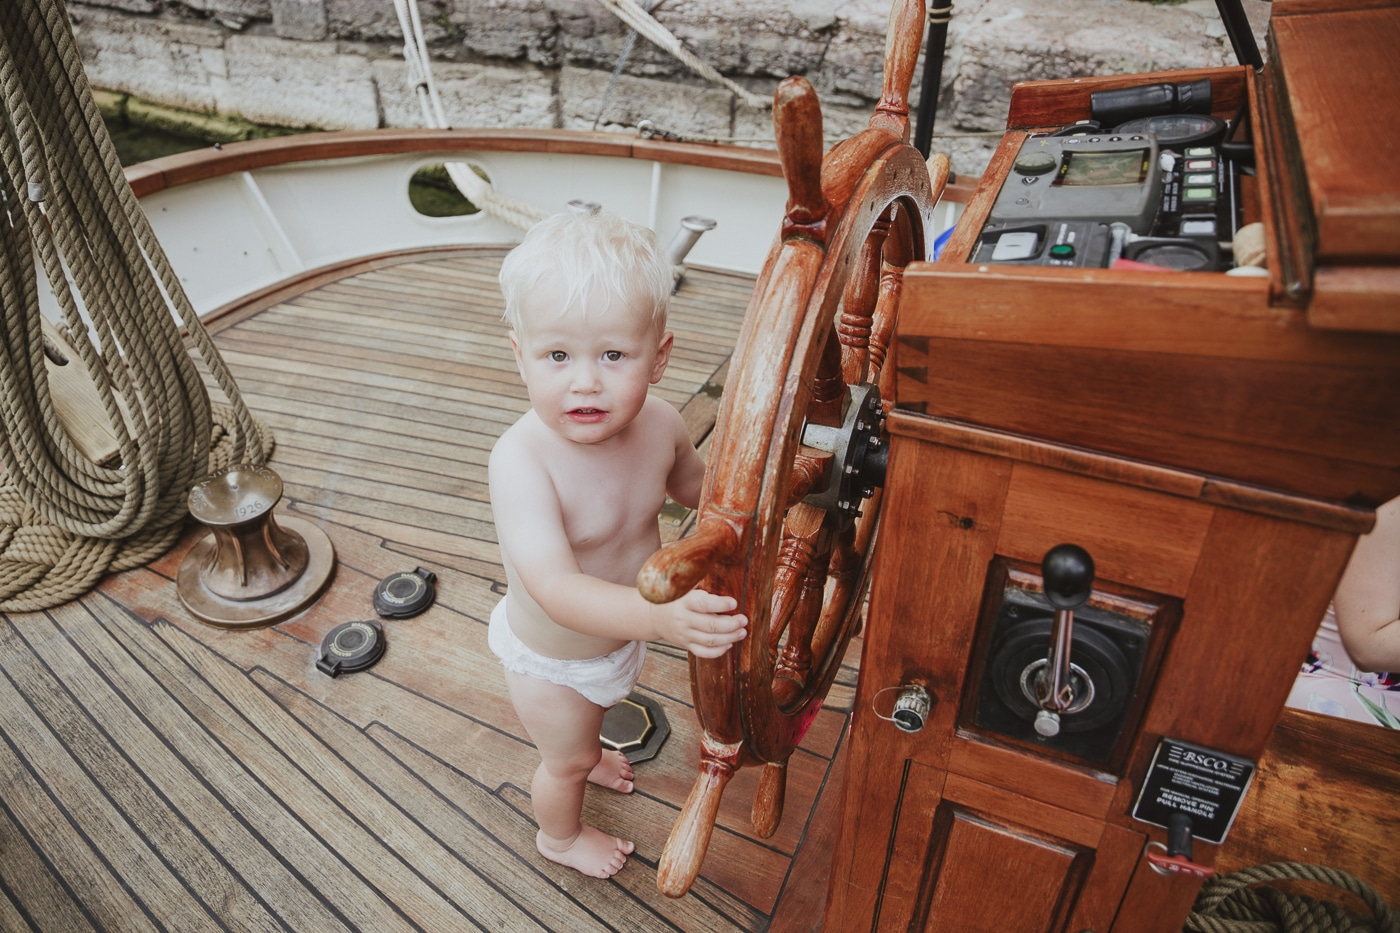 Small blond haired toddler steering a yacht using the steering wheel with ropes in the backgound by Joshua Wyborn